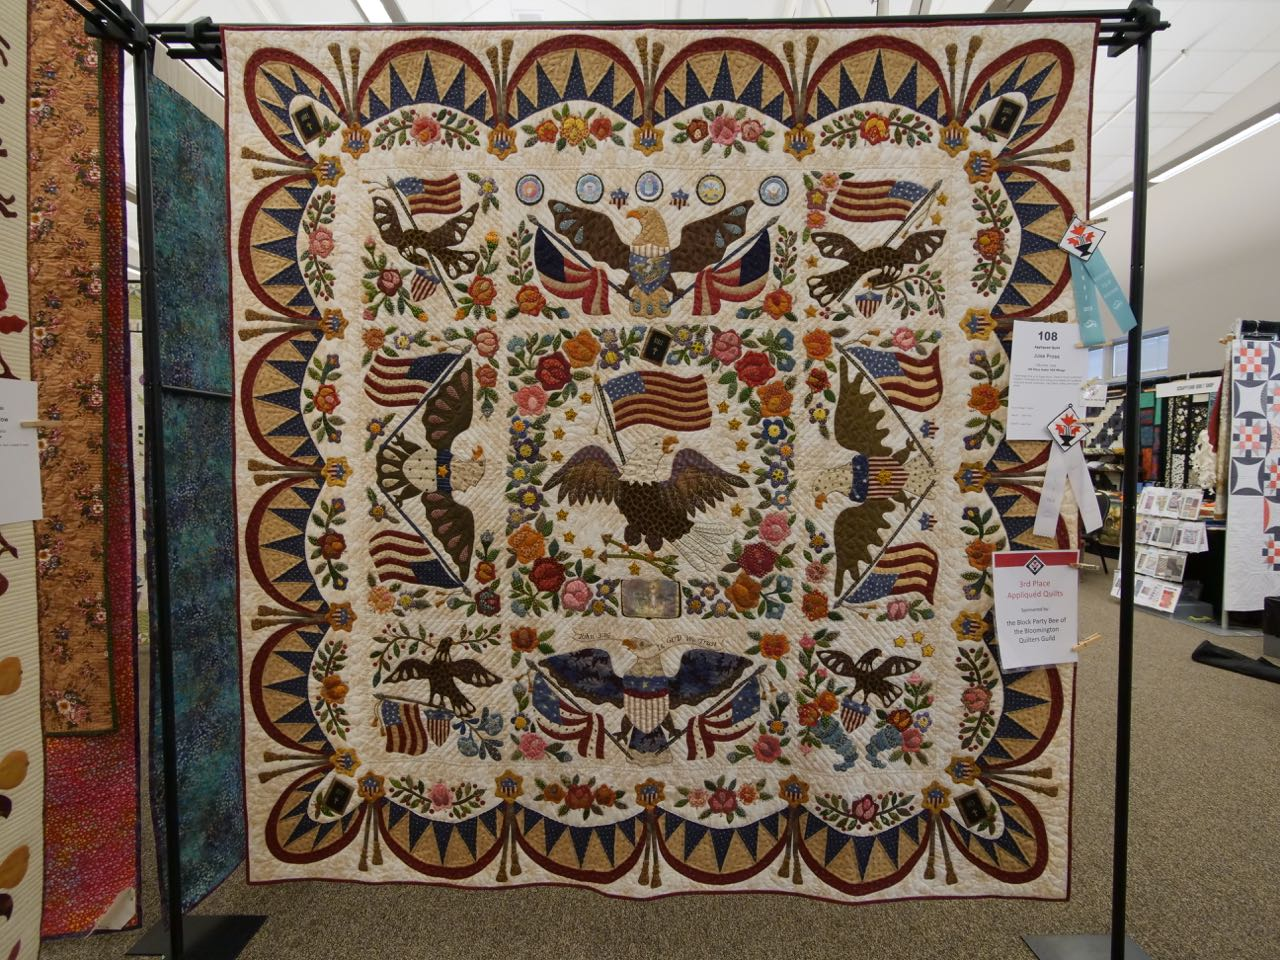 Old Glory Under HIS Wings - 3rd Place, Appliquéd Quilts